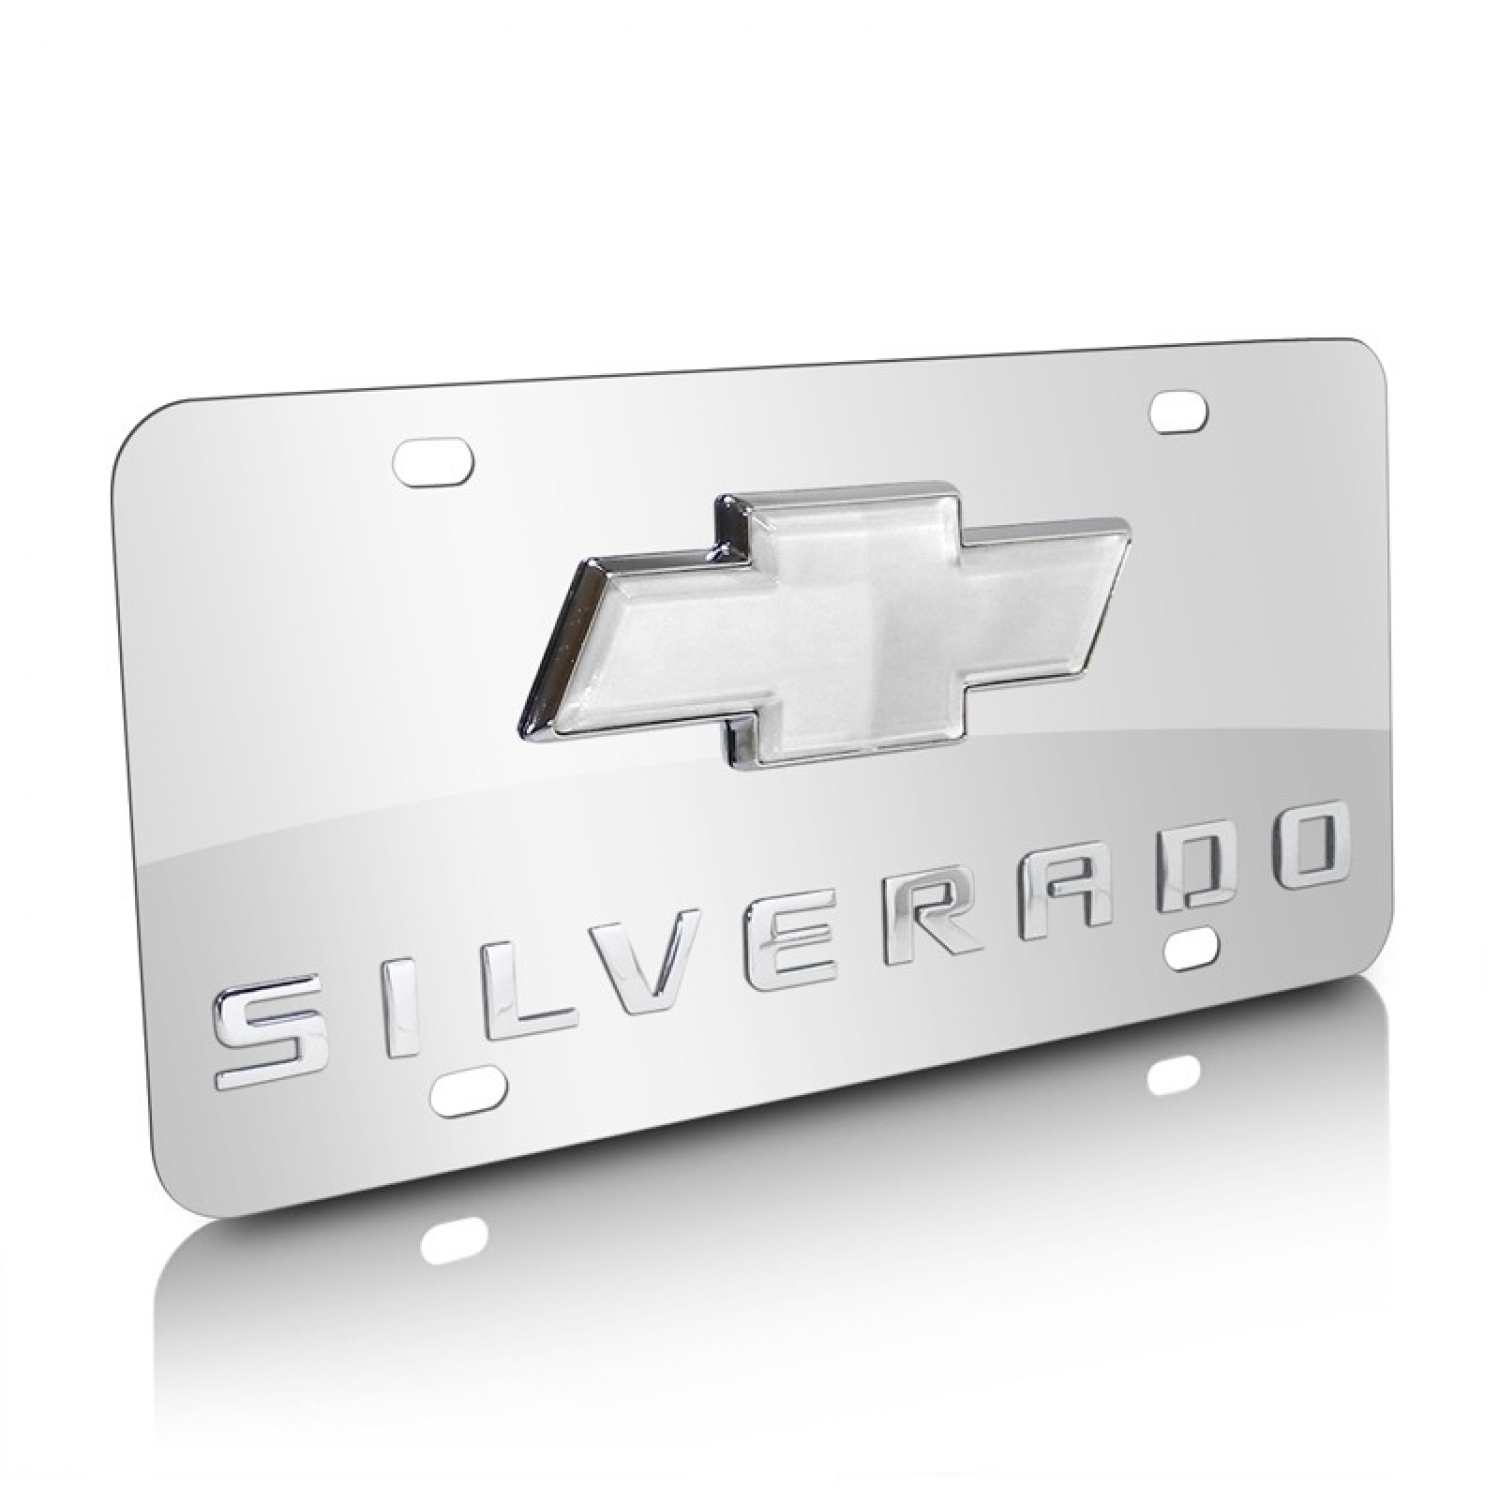 Chevrolet Silverado Bowtie 3D Logo Chrome Stainless Steel License Plate